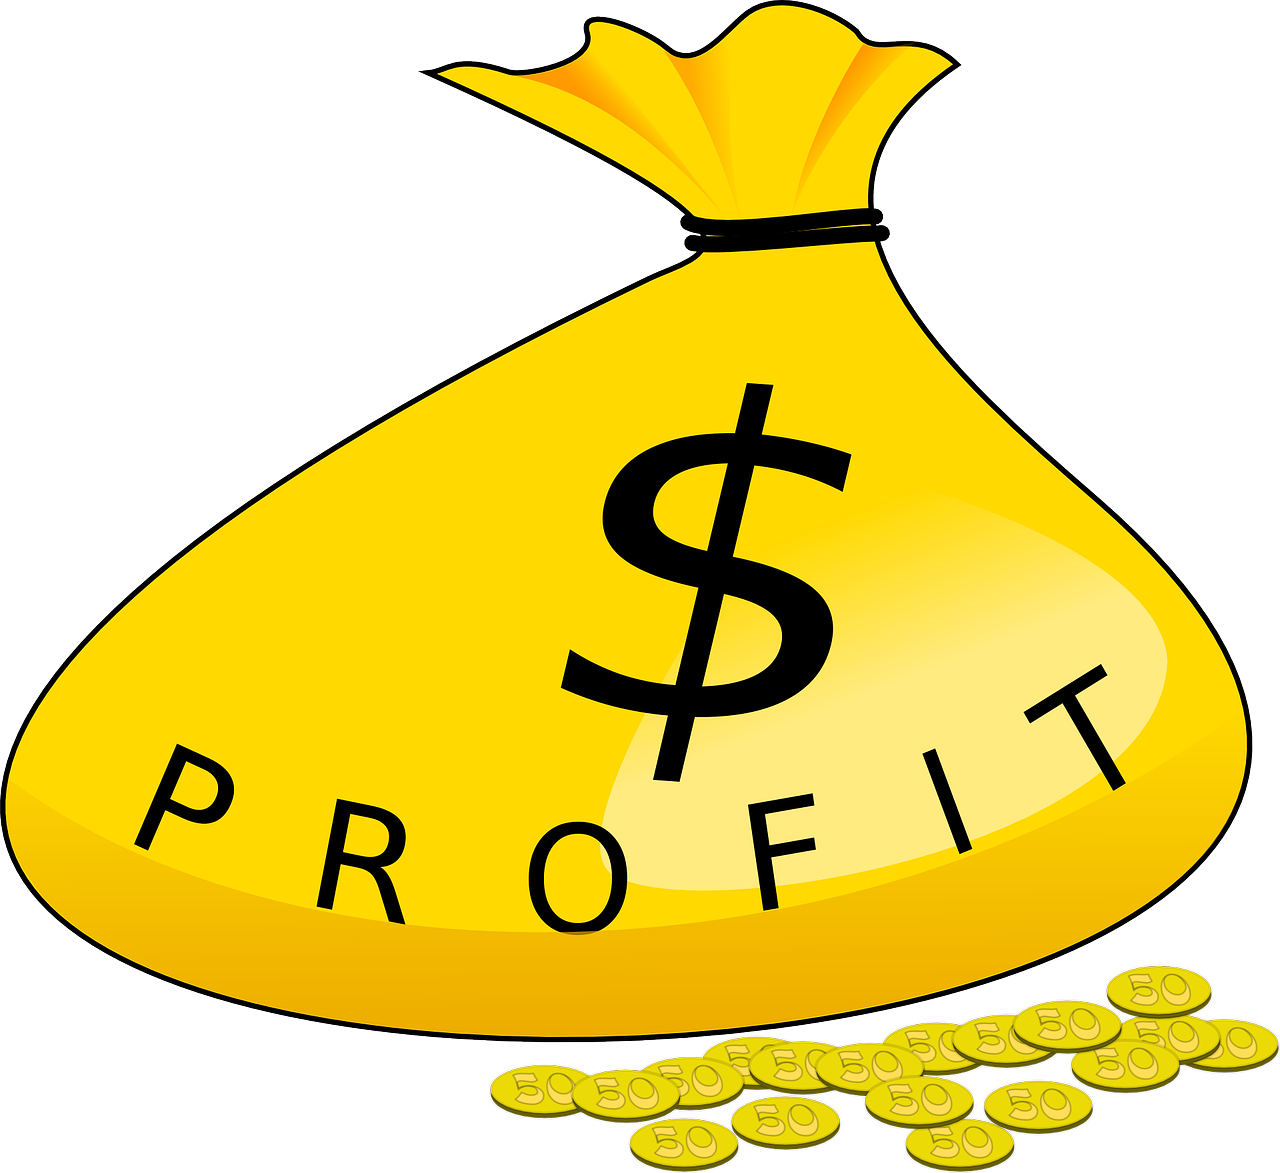 Adding money clipart png stock Taking Profits while increasing Dividend Income png stock